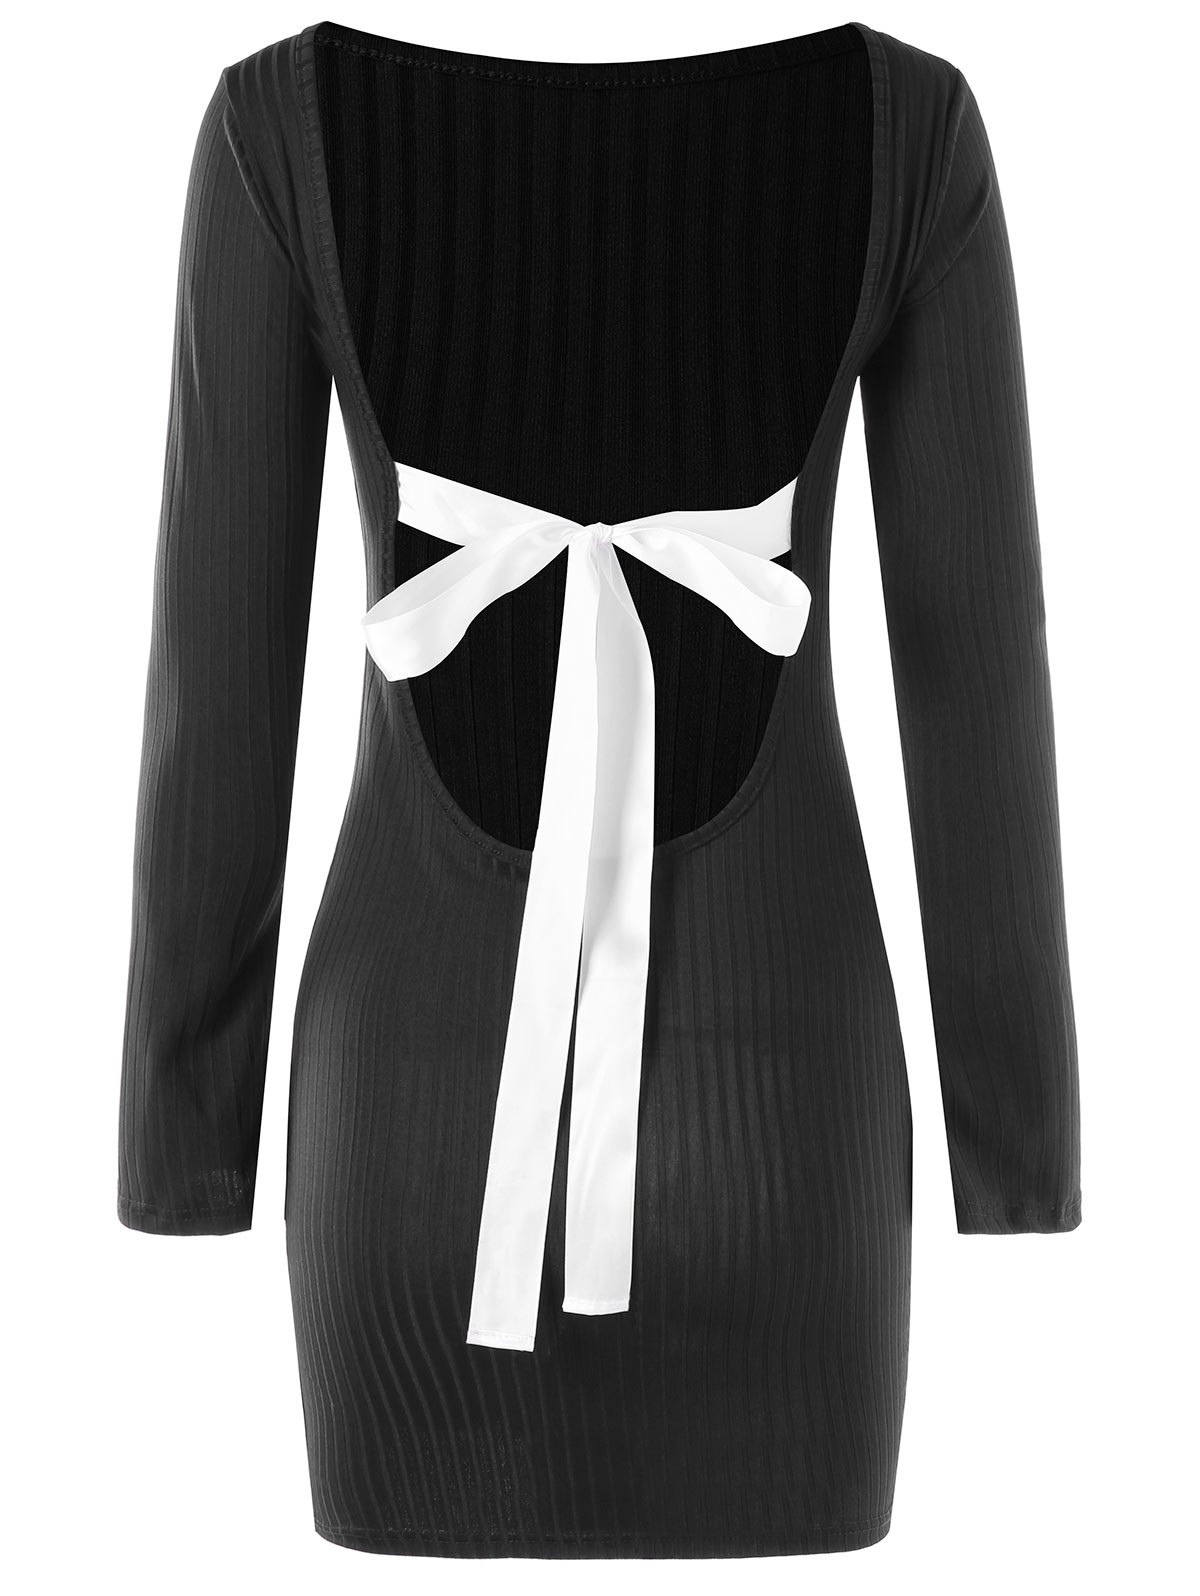 Bowknot Decorated Open Back Dress - BLACK XL